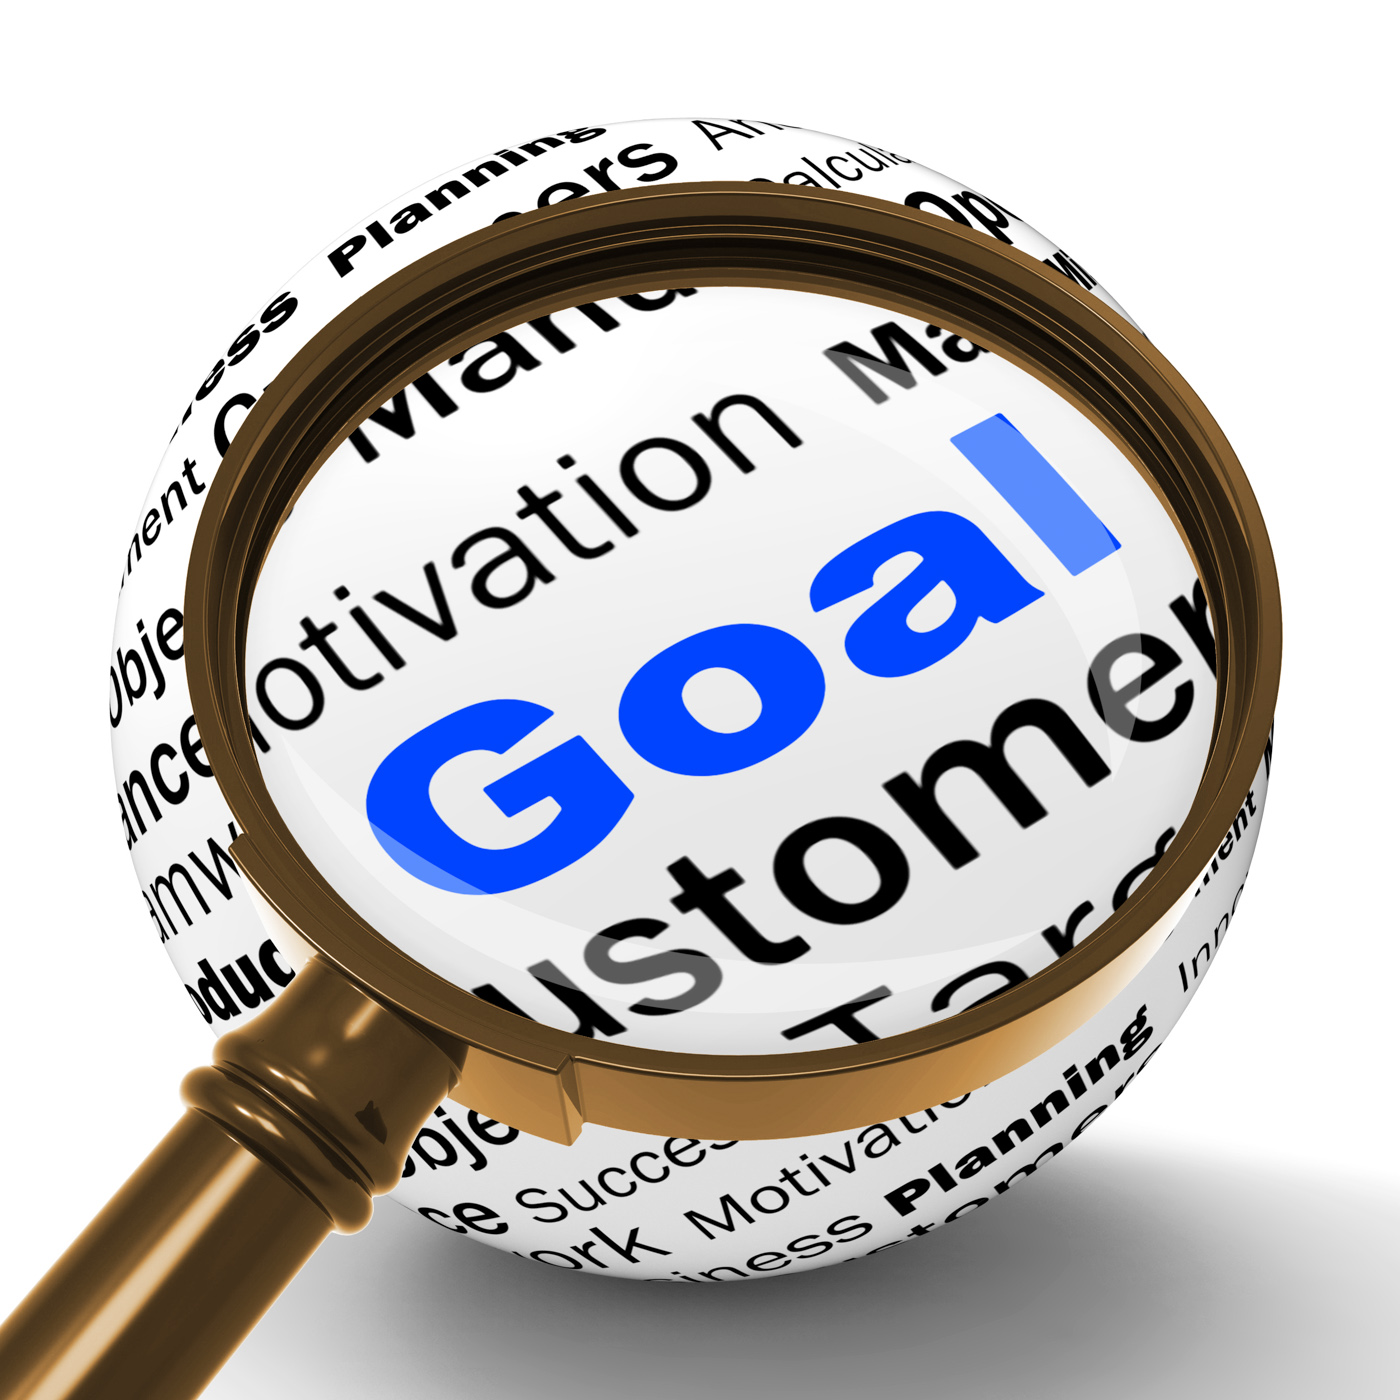 Goal magnifier definition shows future aims and aspirations photo